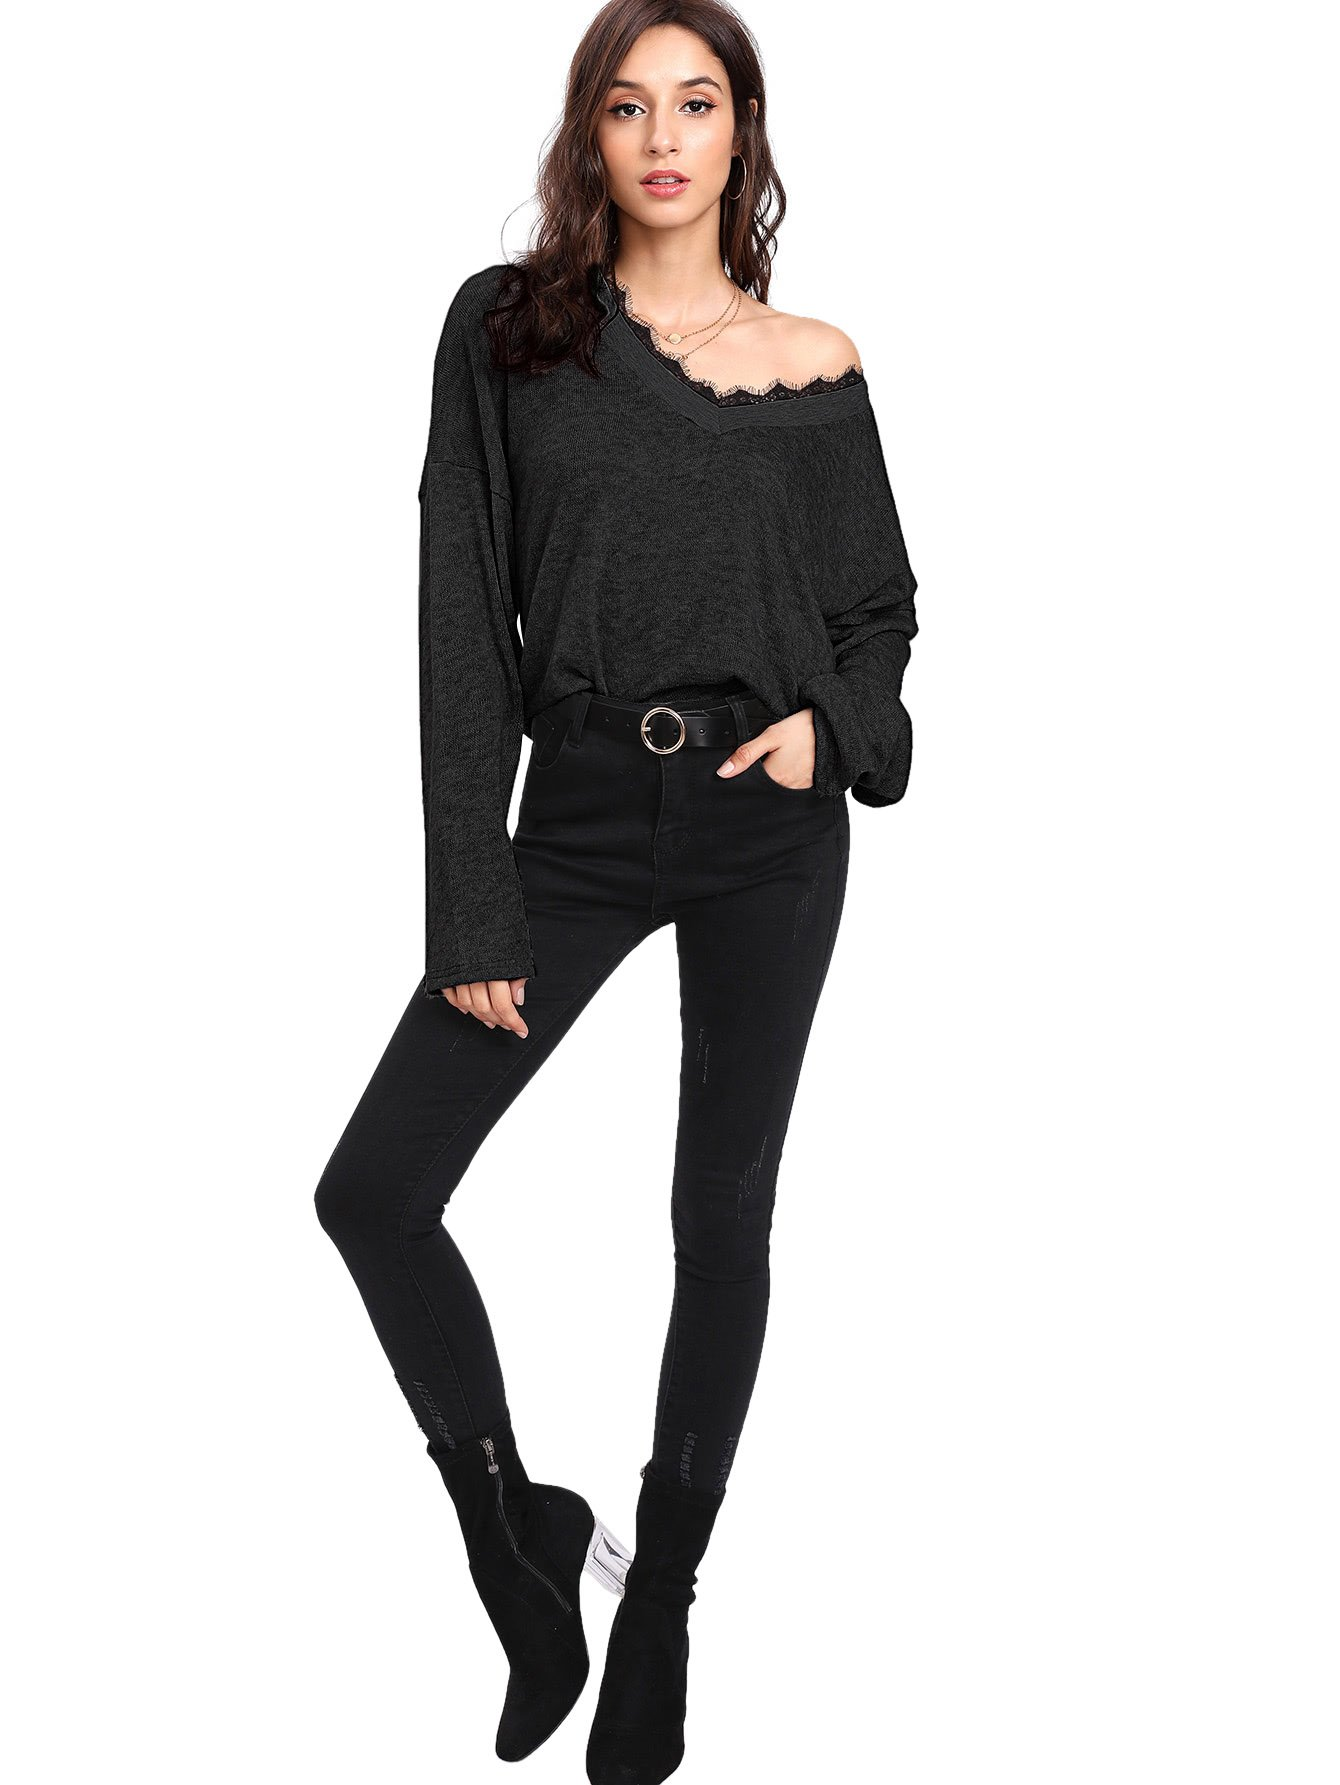 Verdusa Women's Batwing Sleeve Sweaters Jumper Eyelash Lace Pullover Tops Black-1 L by Verdusa (Image #4)